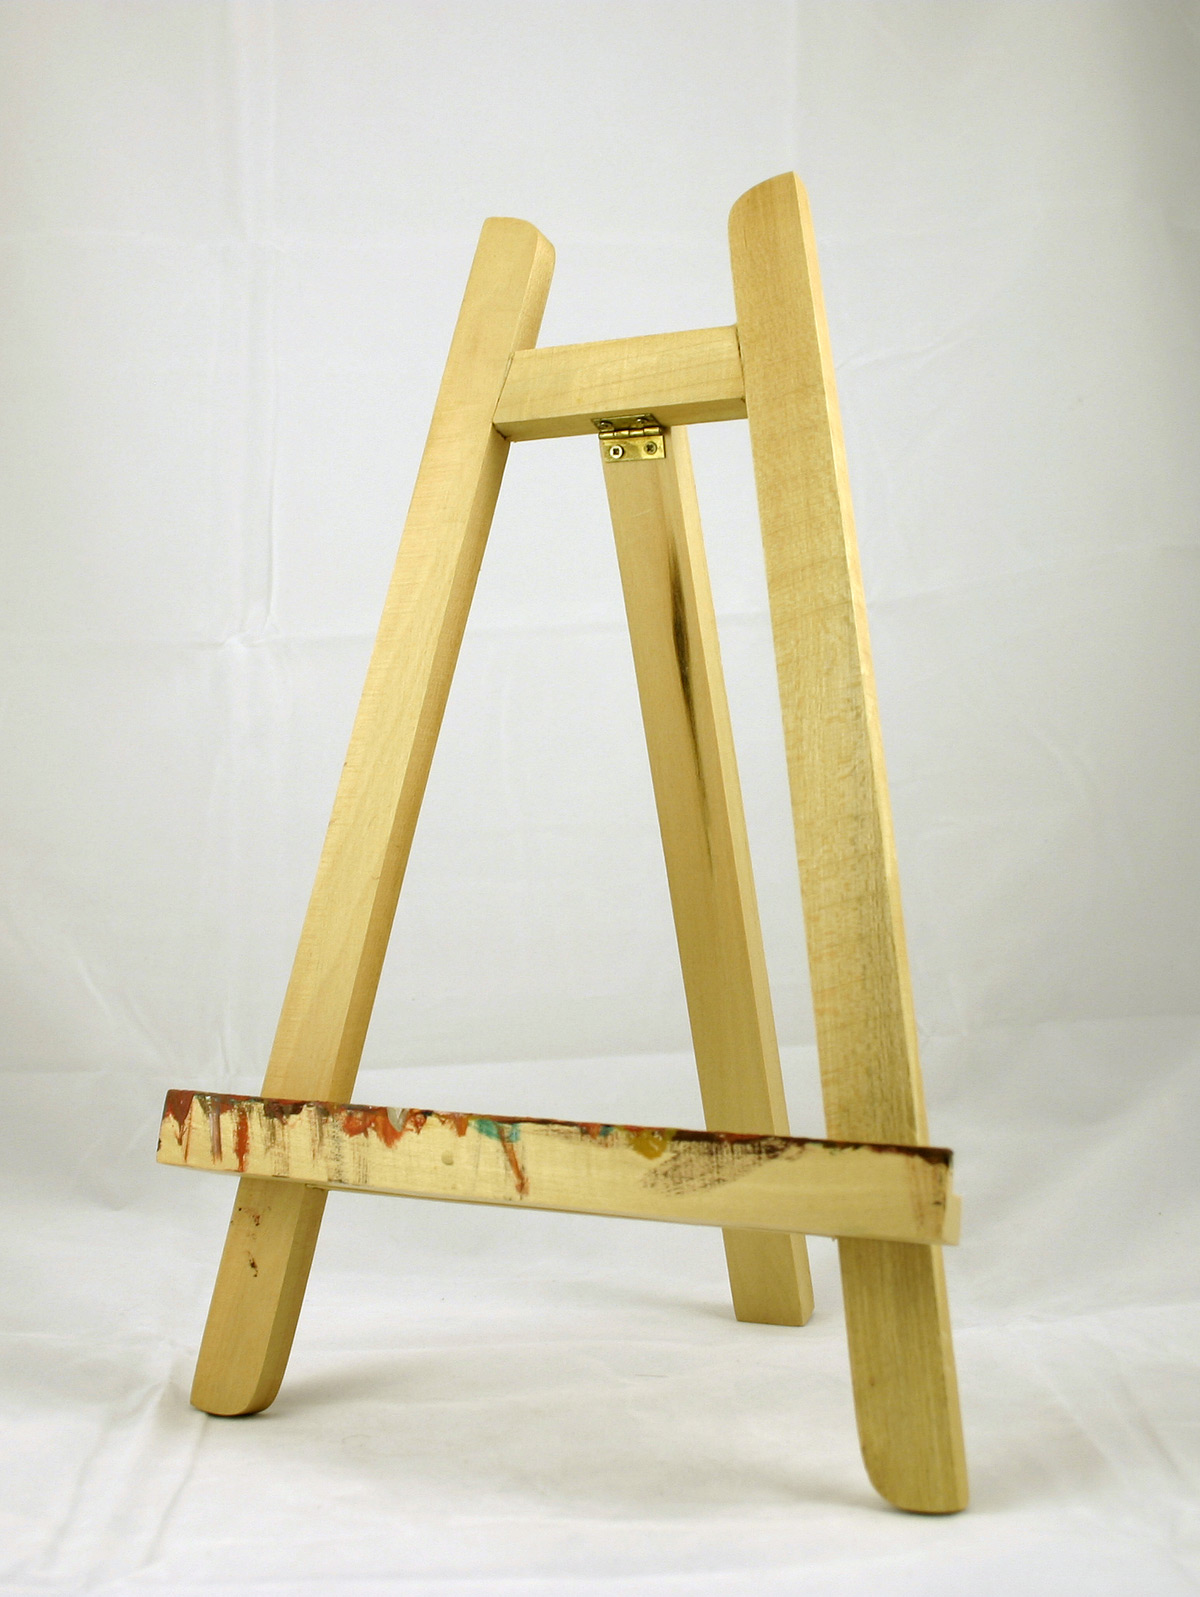 Display Easel, Art, Display, Easel, Painting, HQ Photo